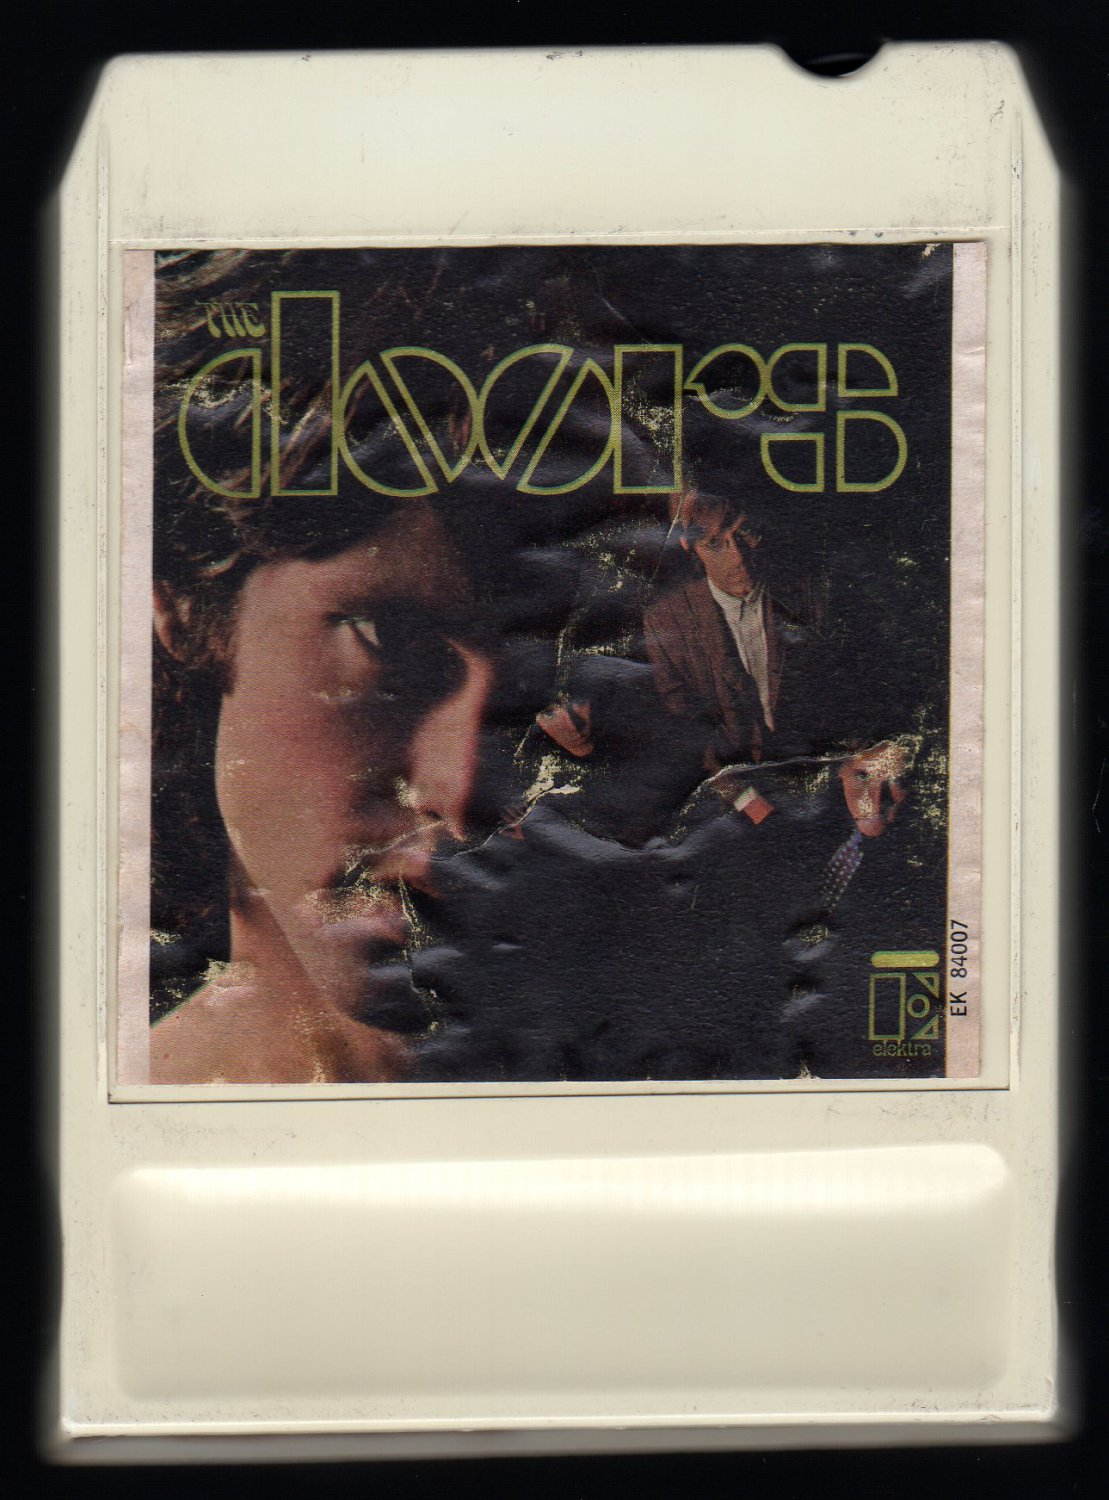 The Doors - The Doors 1967 Debut ELEKTRA AMPEX LEAR A32 8-TRACK TAPE